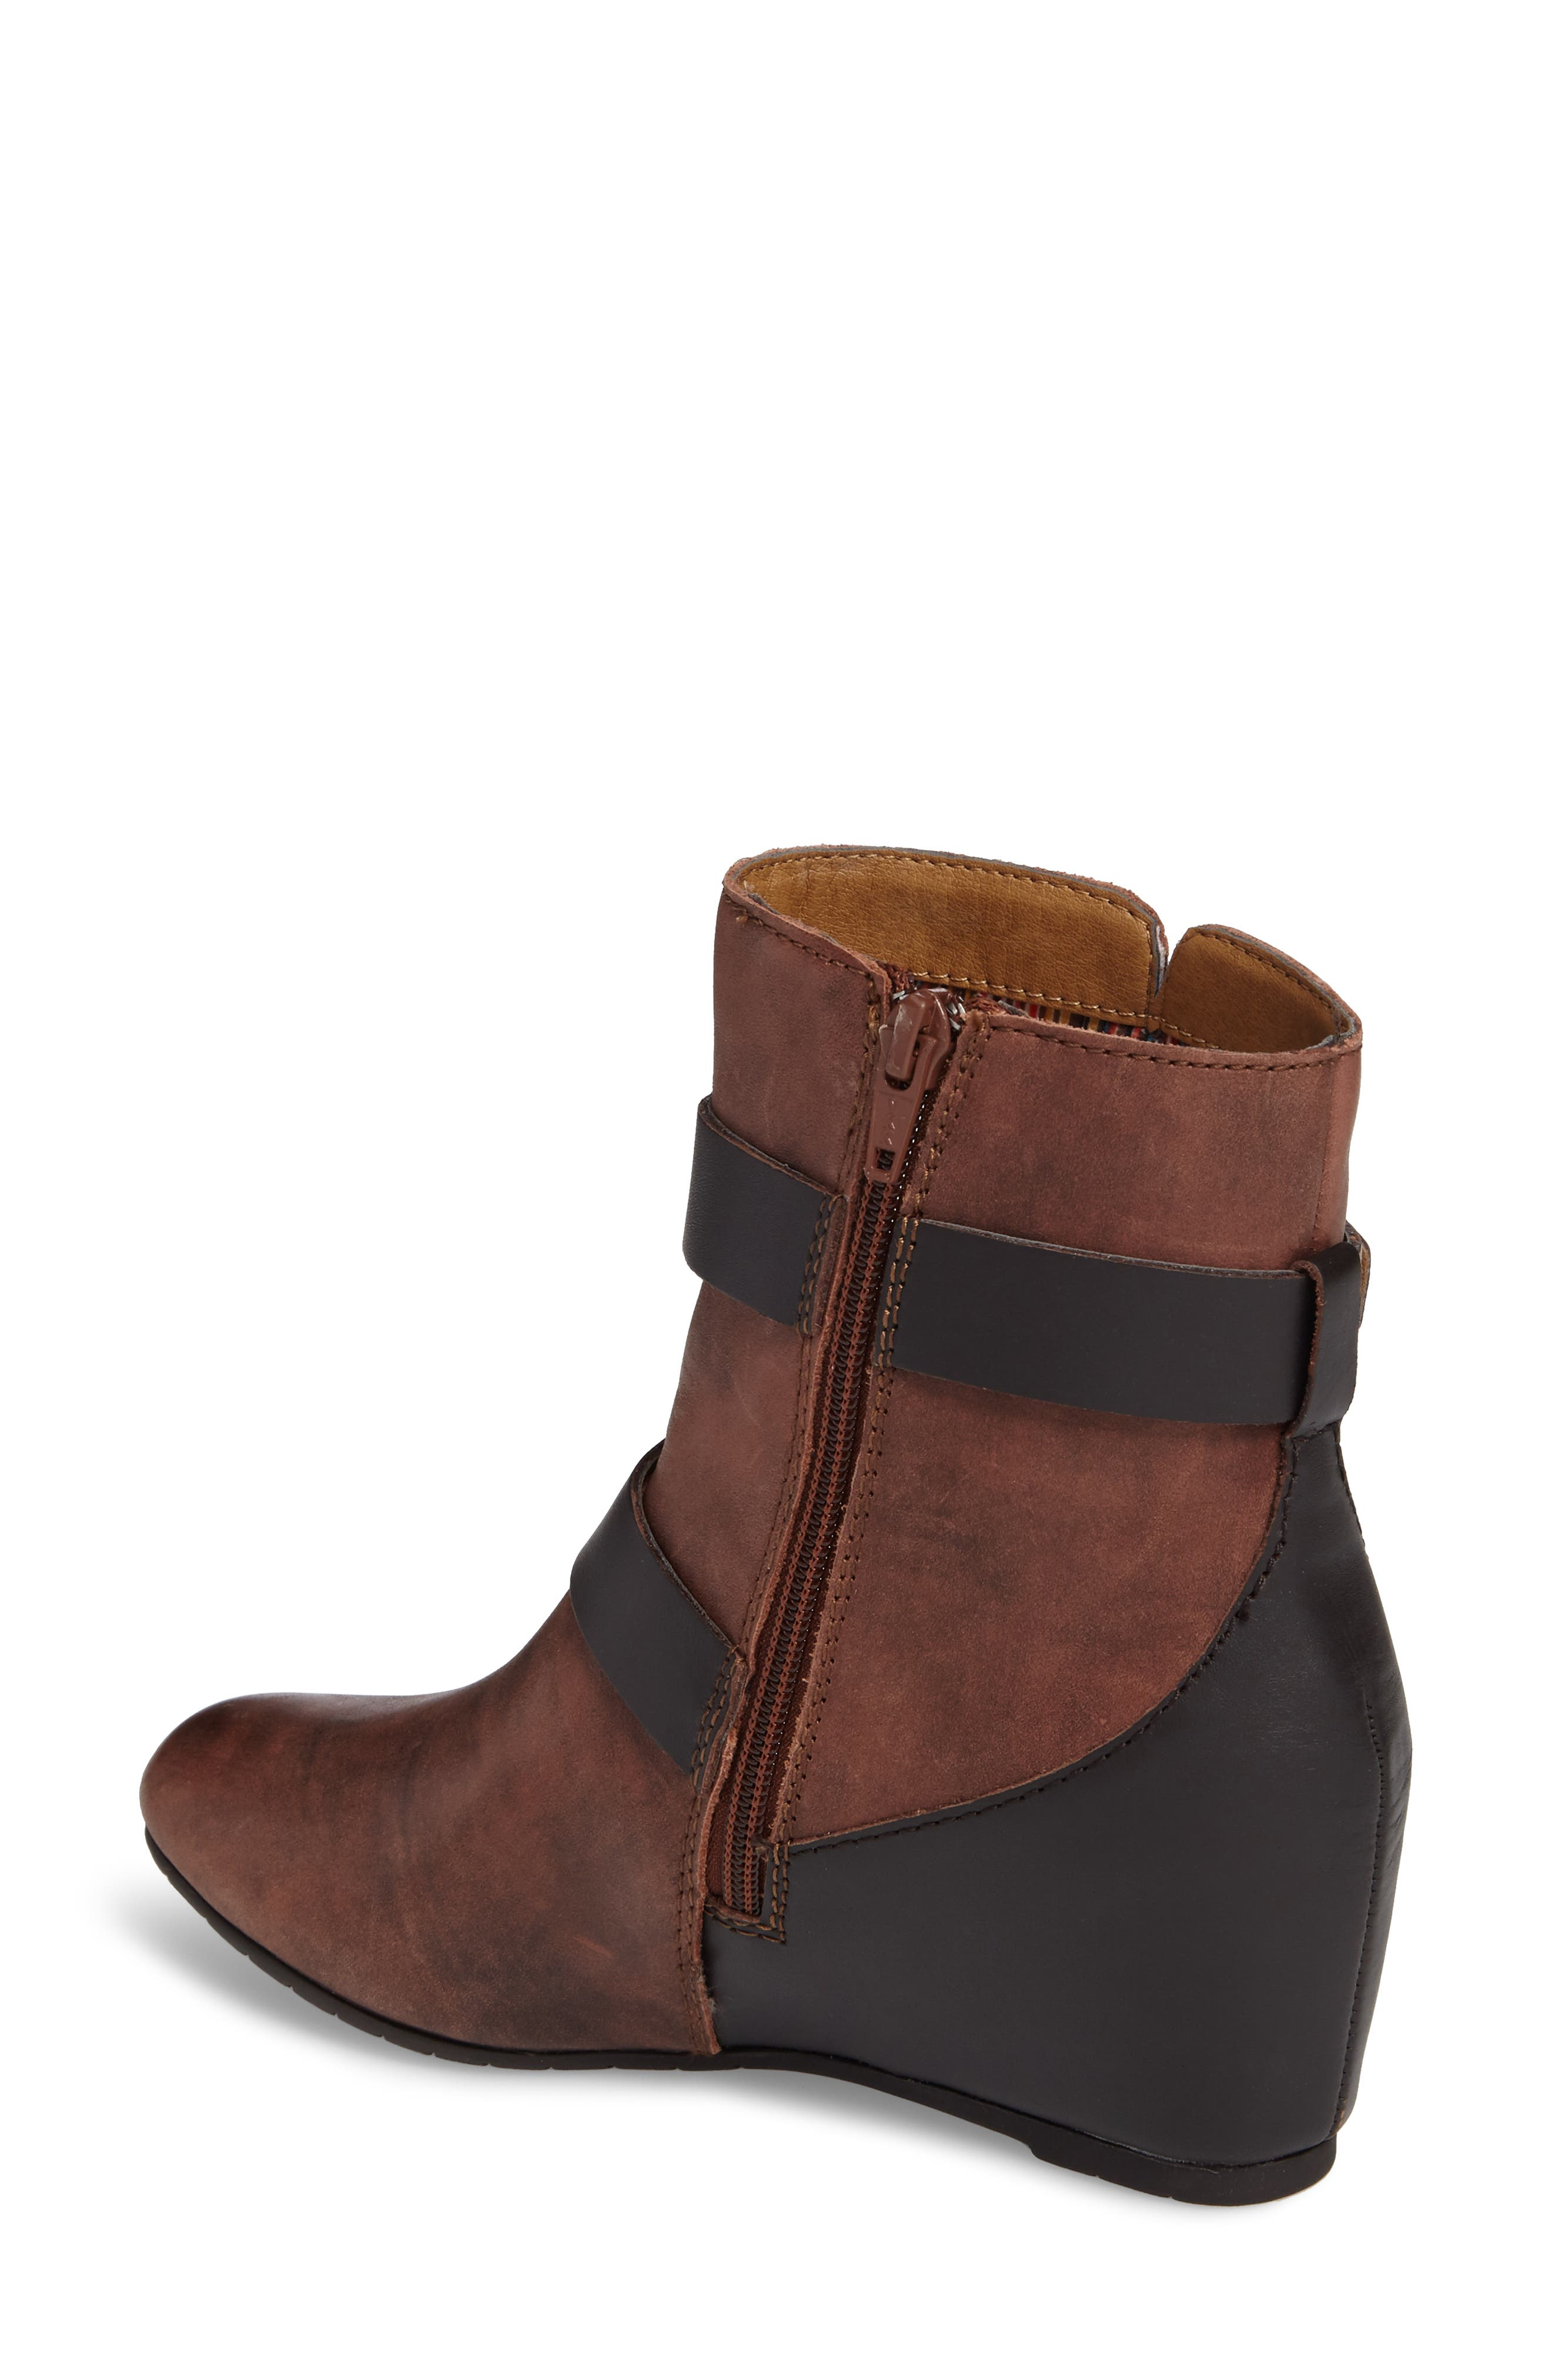 Ramika Wedge Bootie,                             Alternate thumbnail 2, color,                             Mahogany Leather